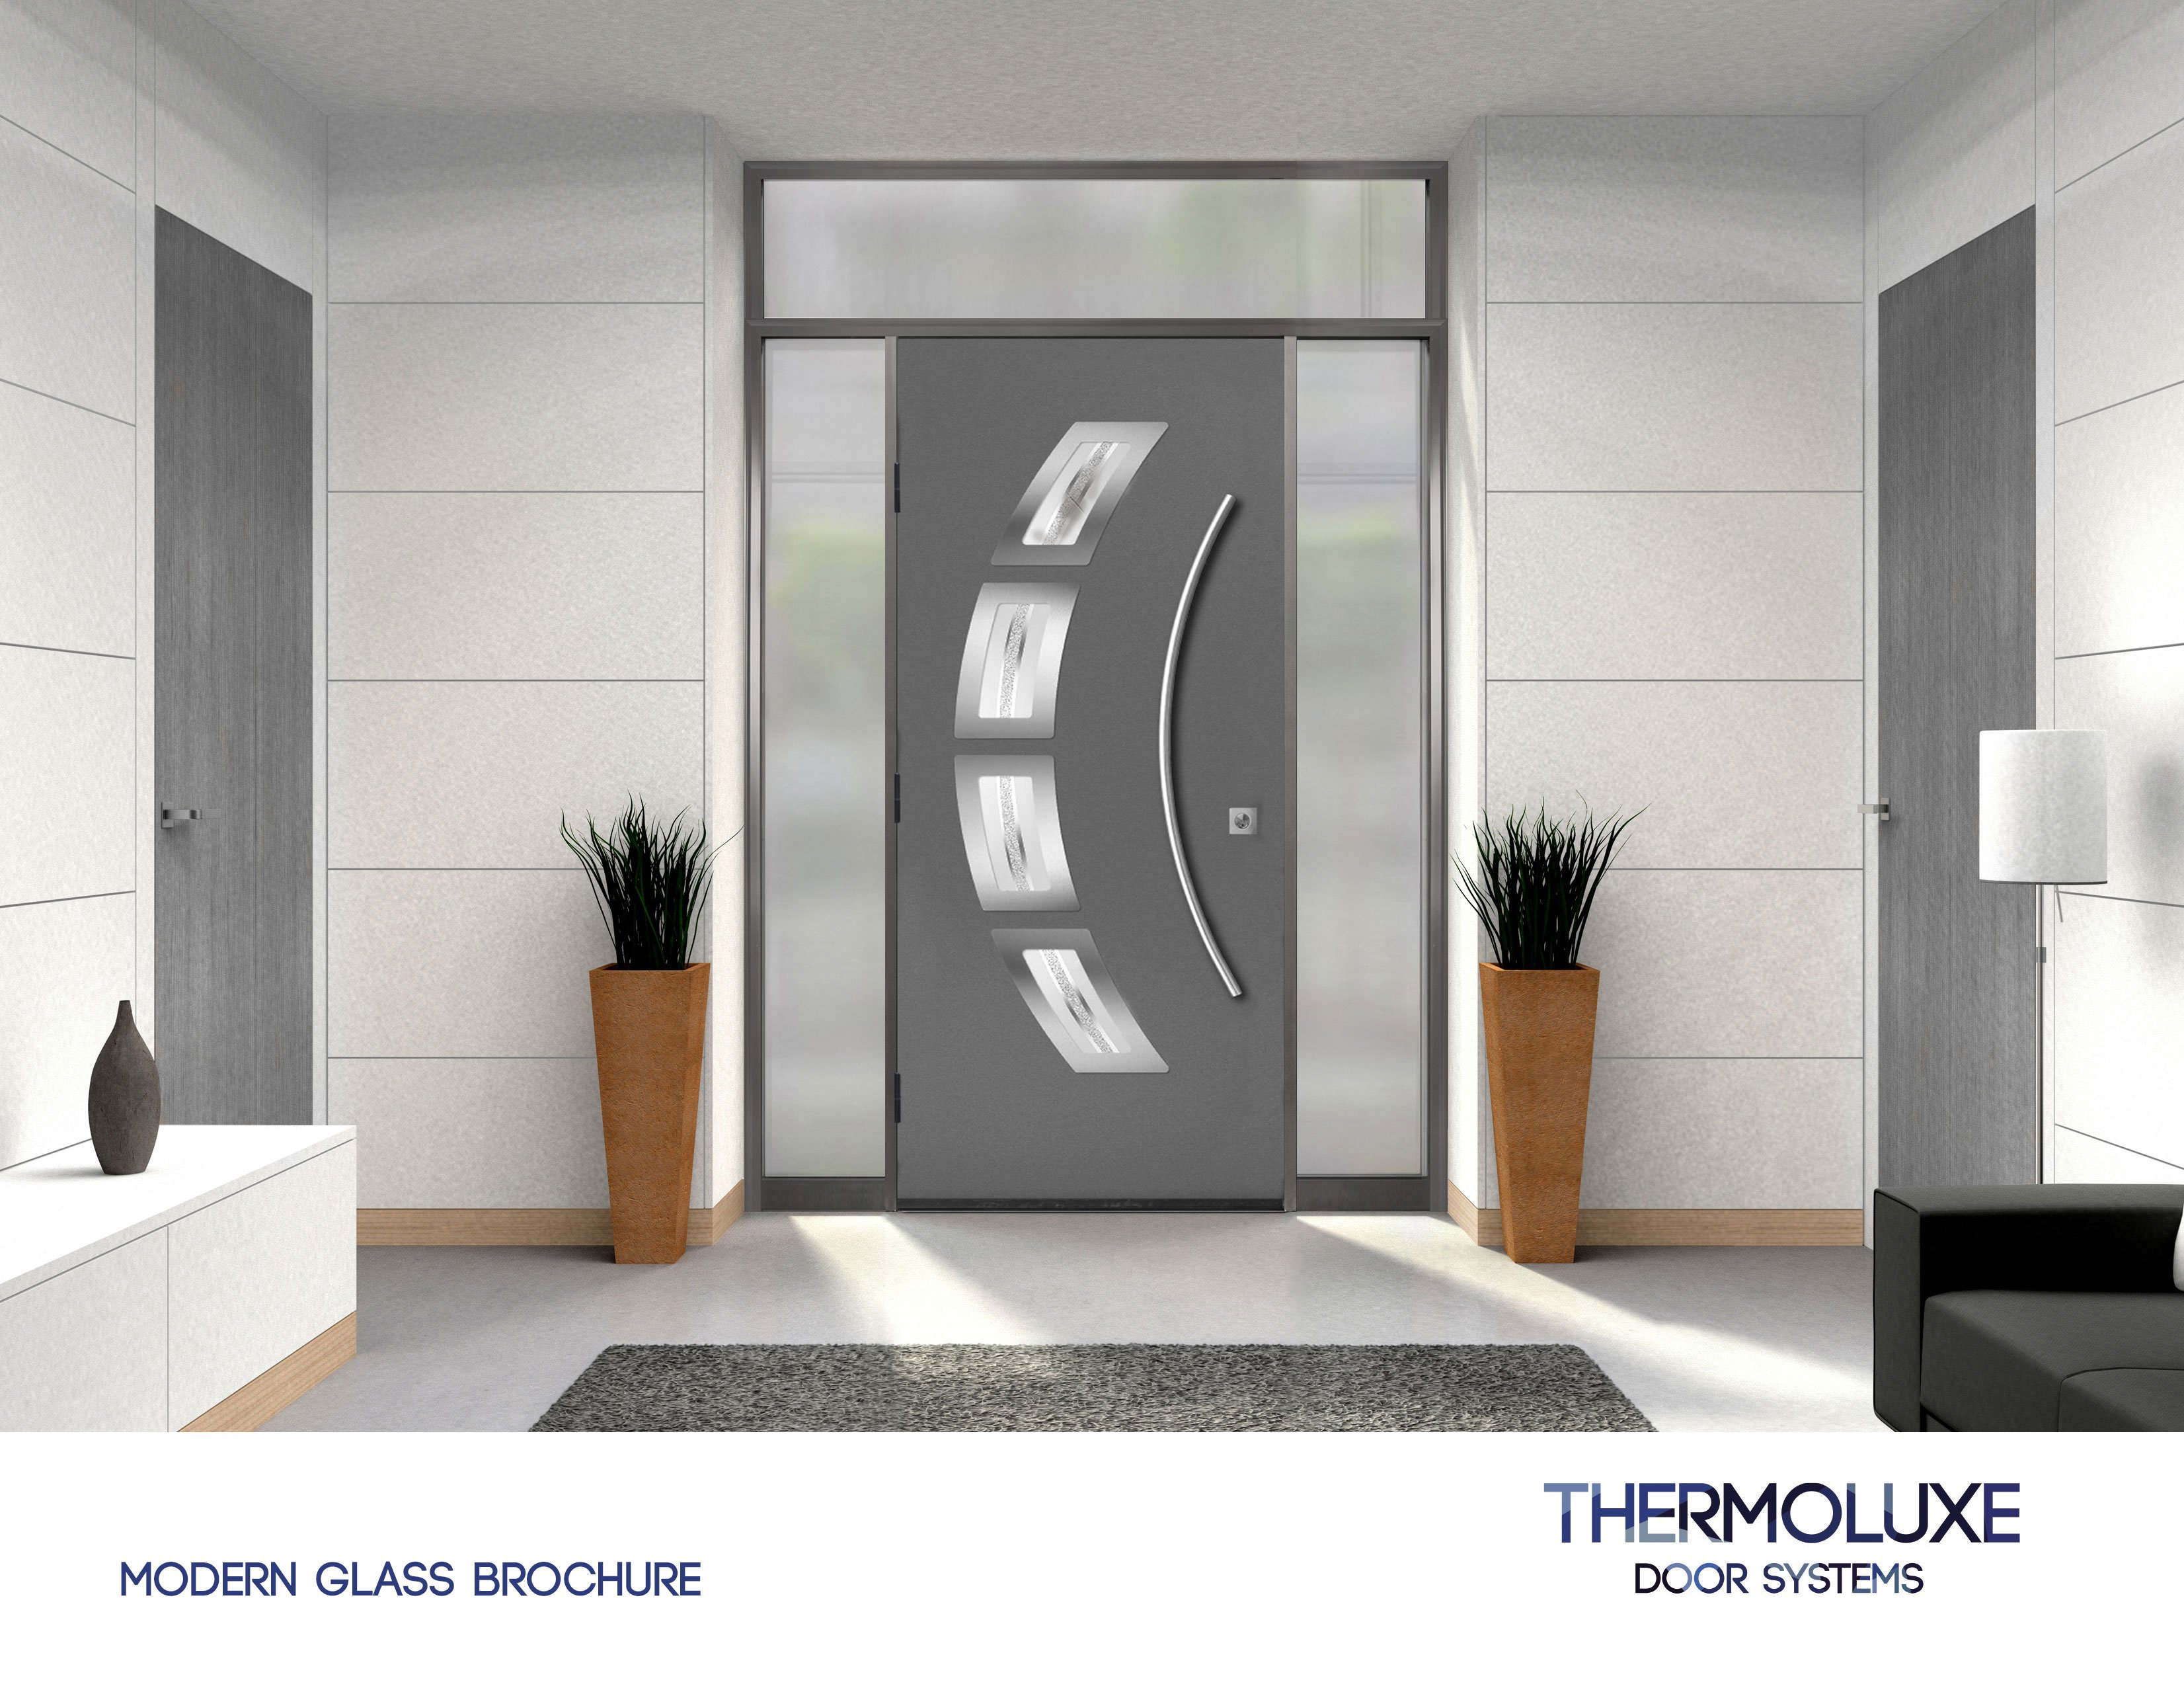 Thermoluxe-Contemporary-Glass